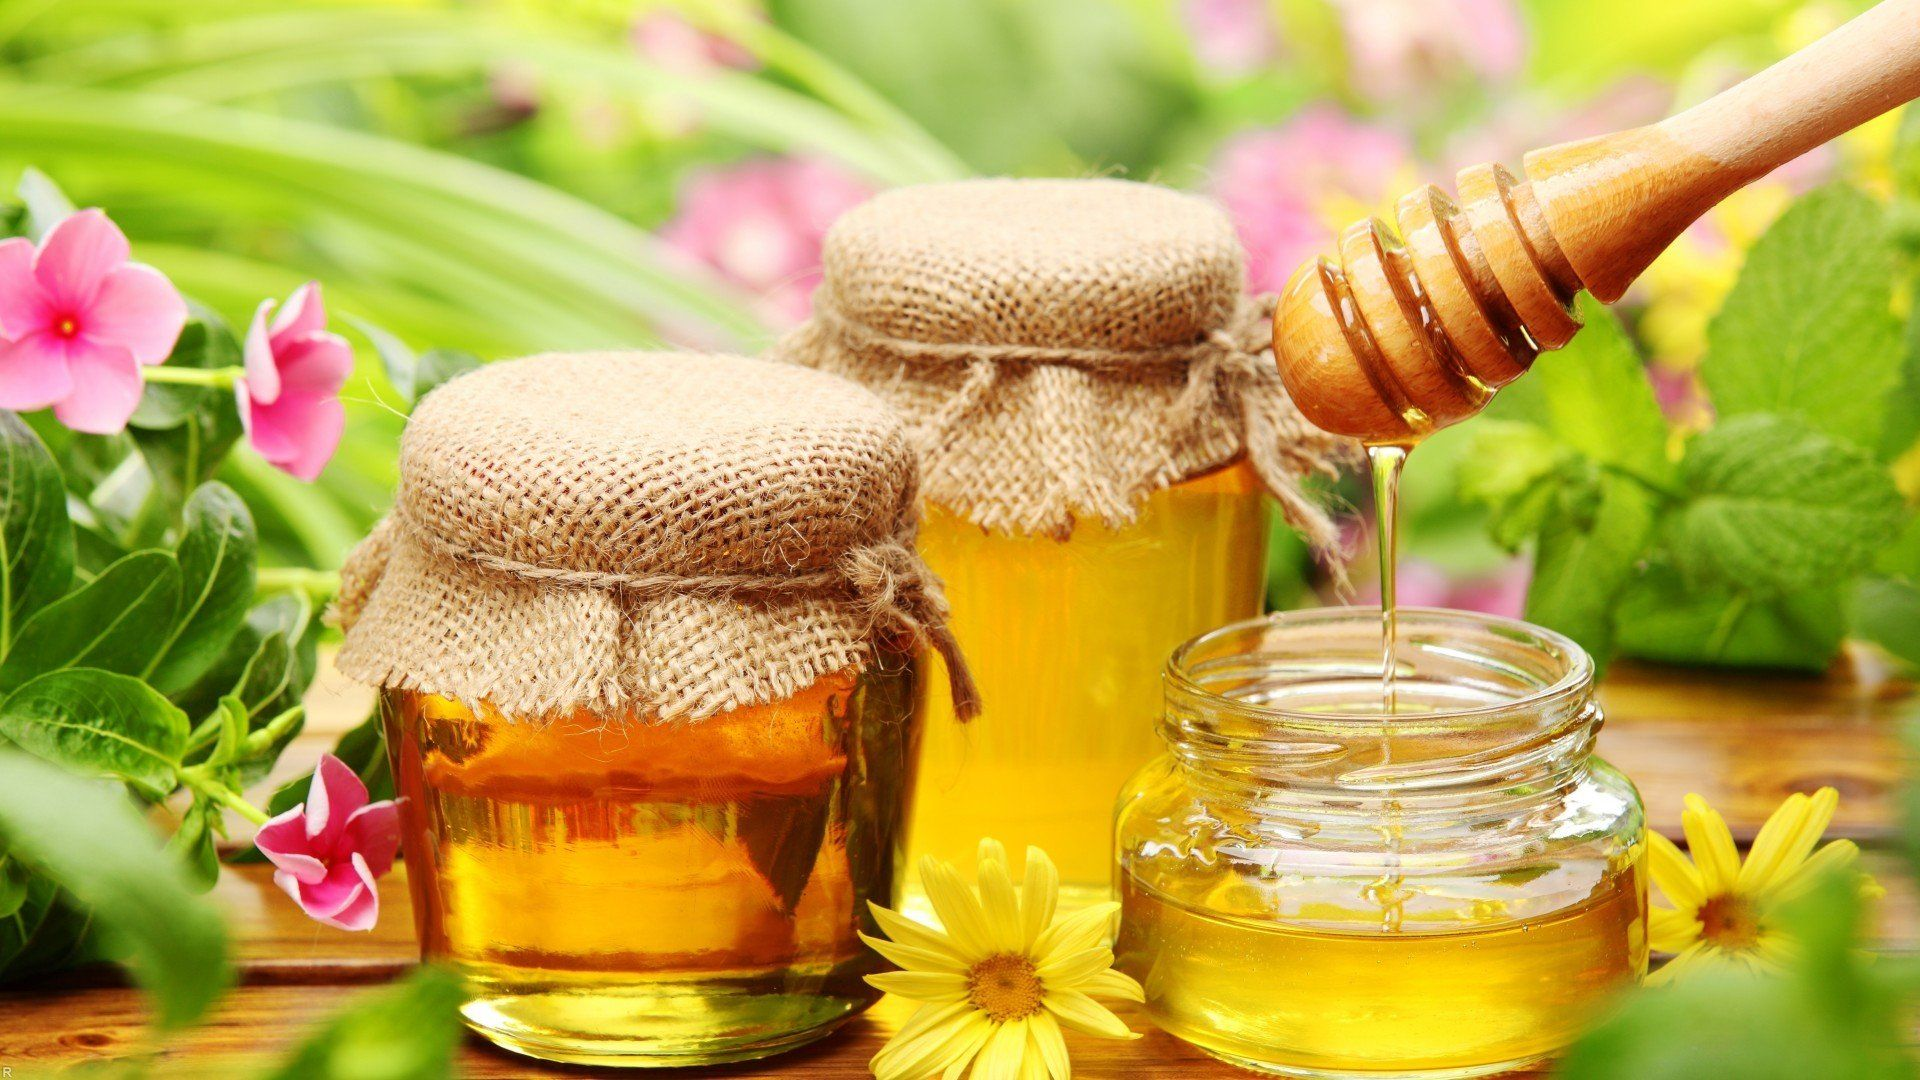 Honey download free wallpapers for pc in hd